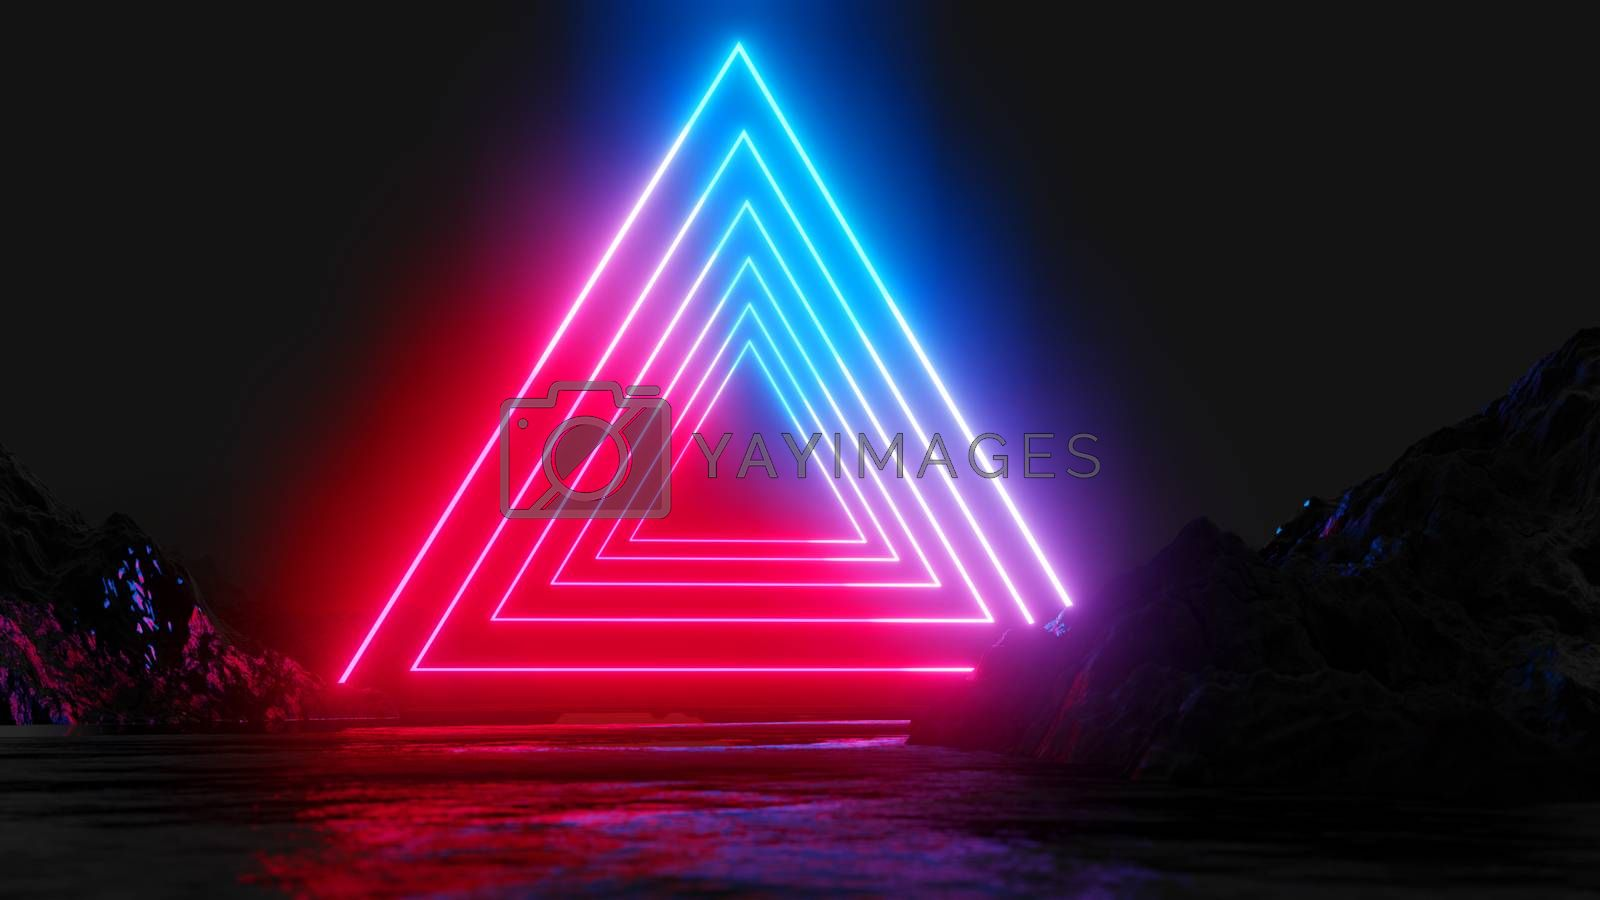 Glowing Neon Triangles On Dark Background Royalty Free Stock Image Stock Photos Royalty Free Images Vectors Footage Yayimages